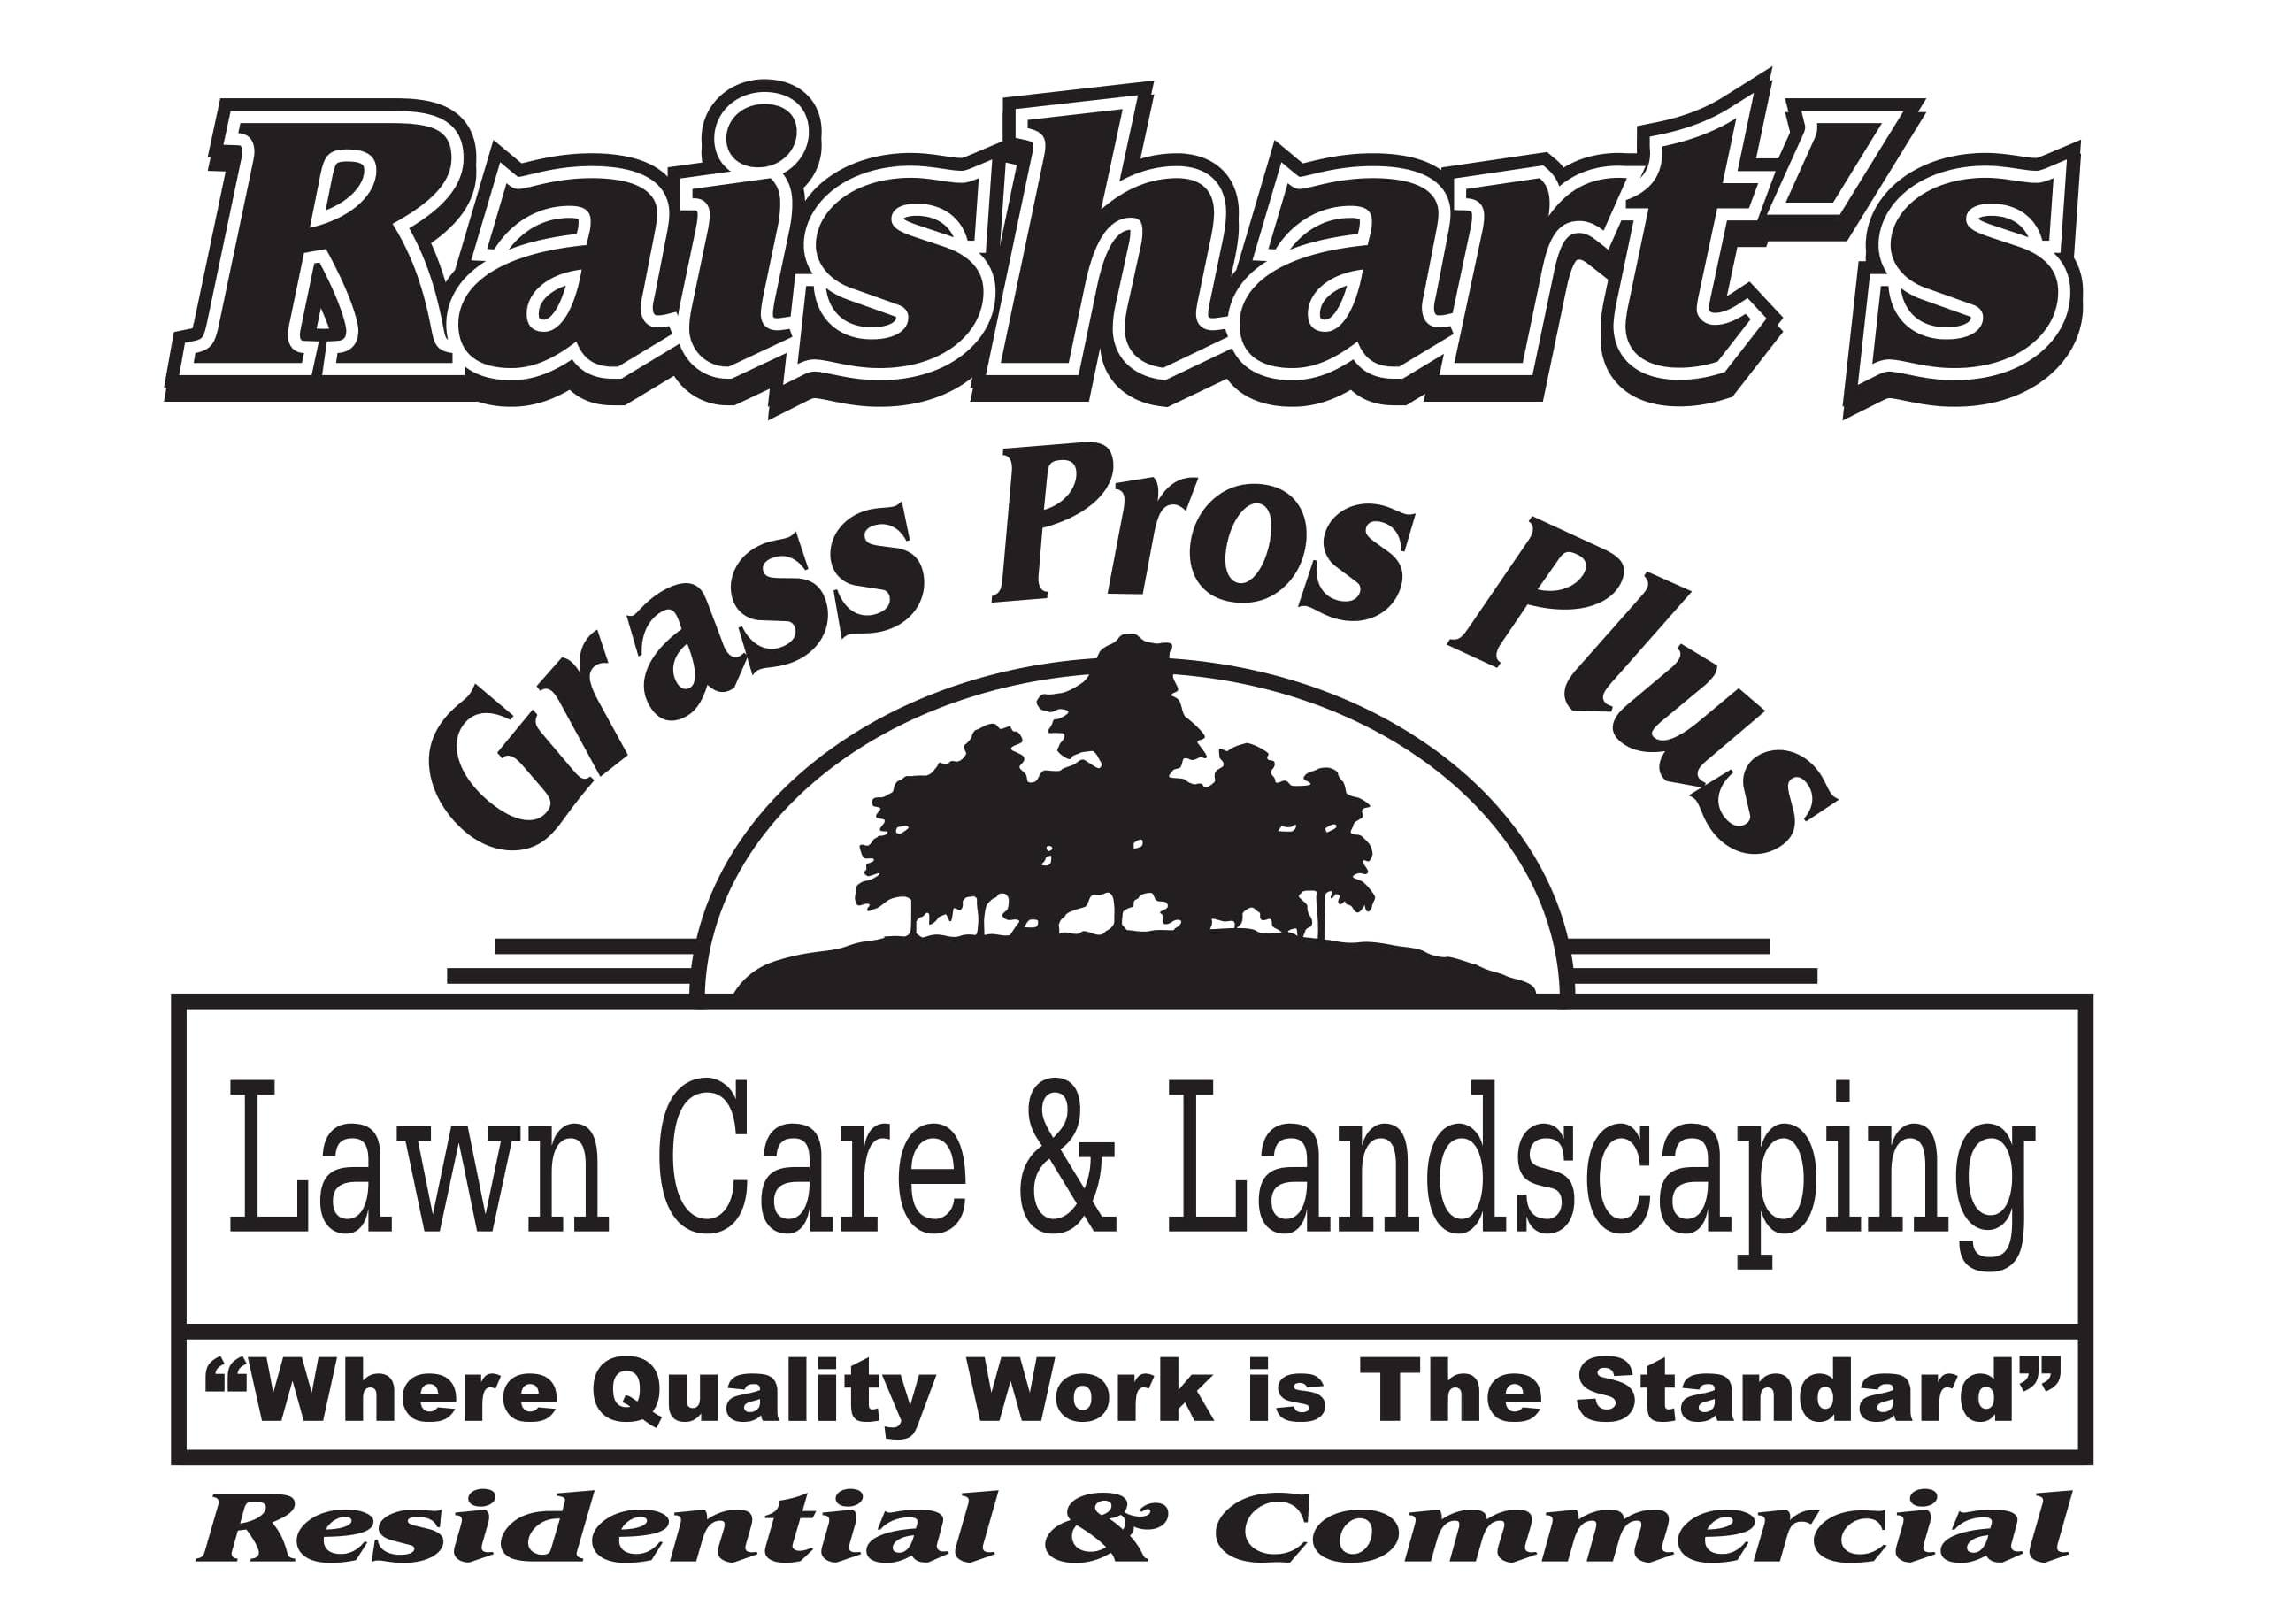 Home - Raishart's Grass Pros Plus